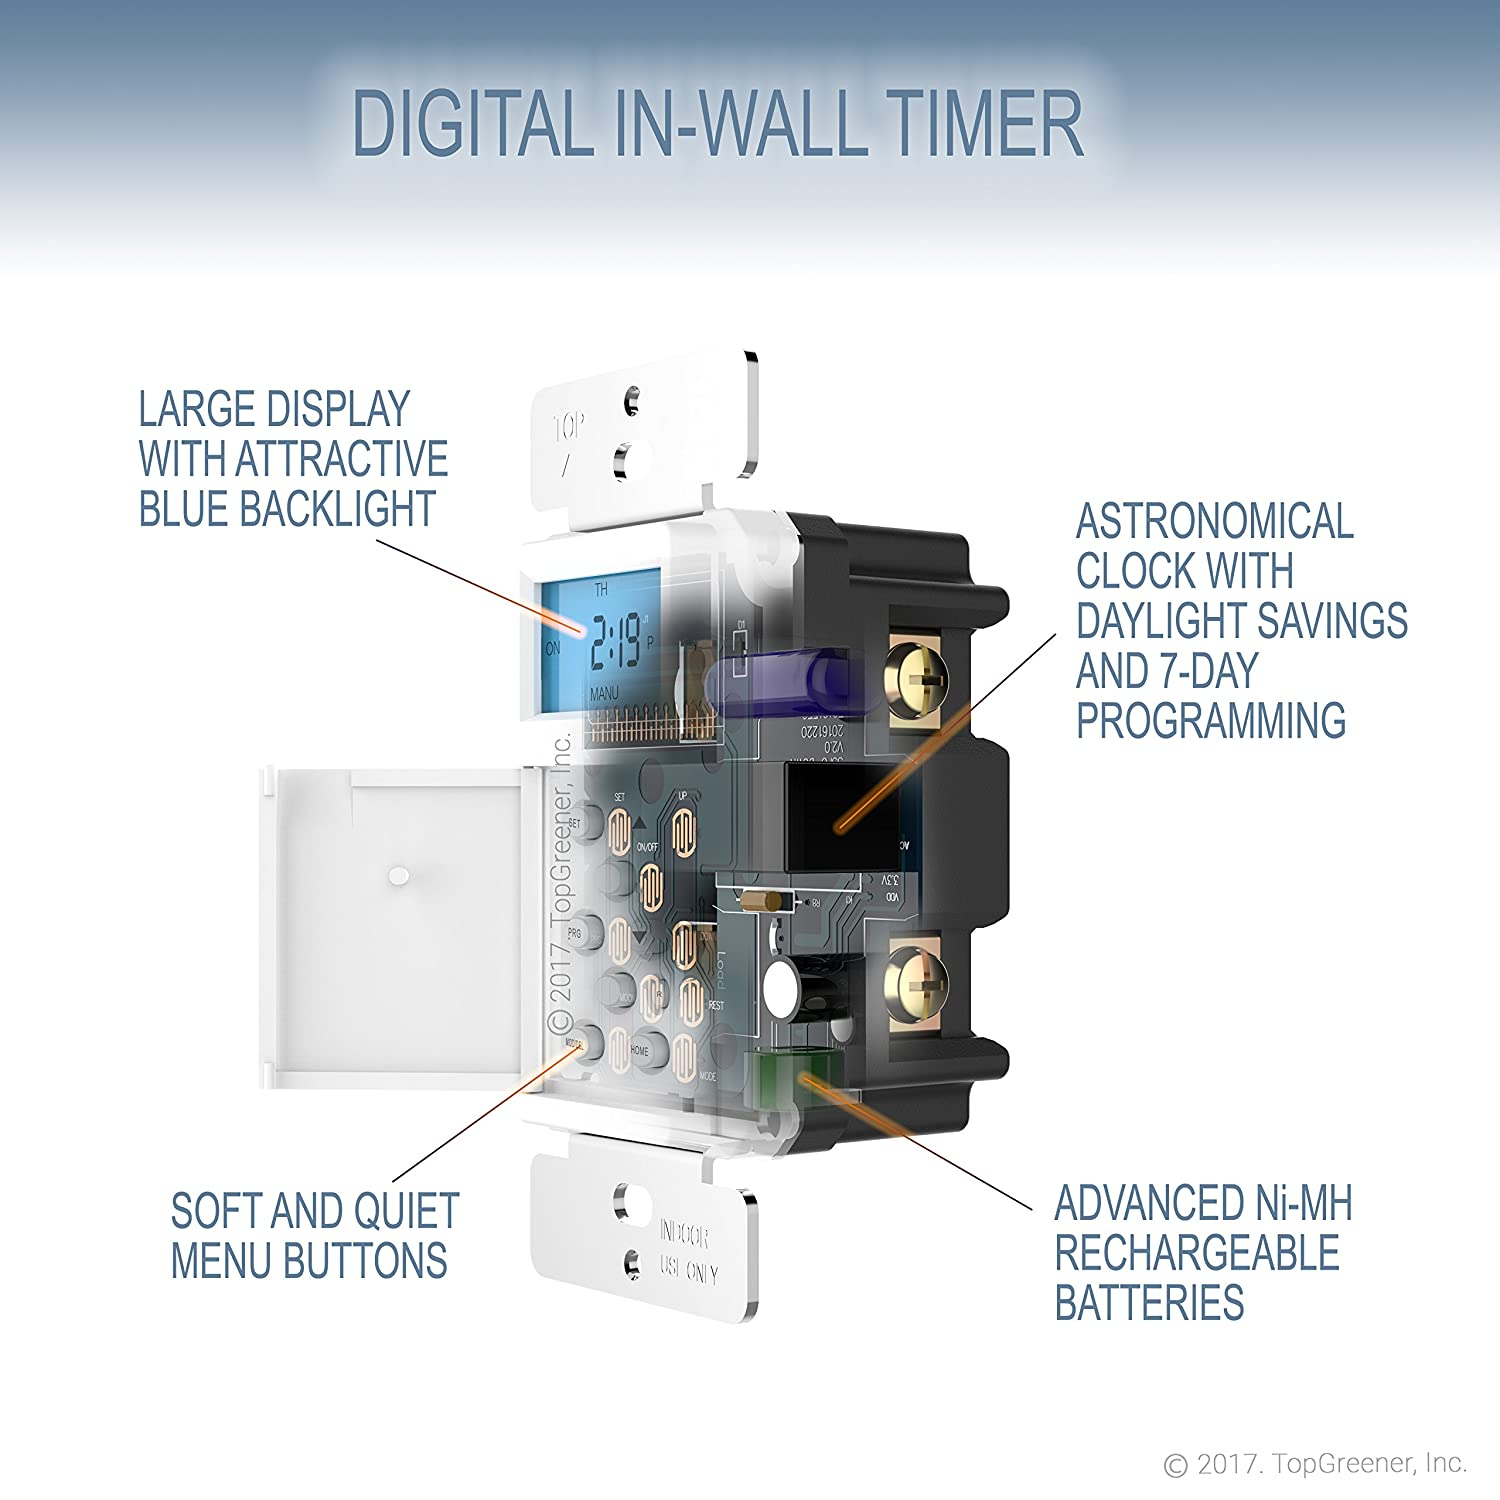 Topgreener Tgt01 H Digital Switch Astronomic In Wall 7 Day Intermatic Photocell Wiring Diagram With Timer Programmable Sunrise Sunset Solar Time Table Dusk To Dawn Neutral Wire Required